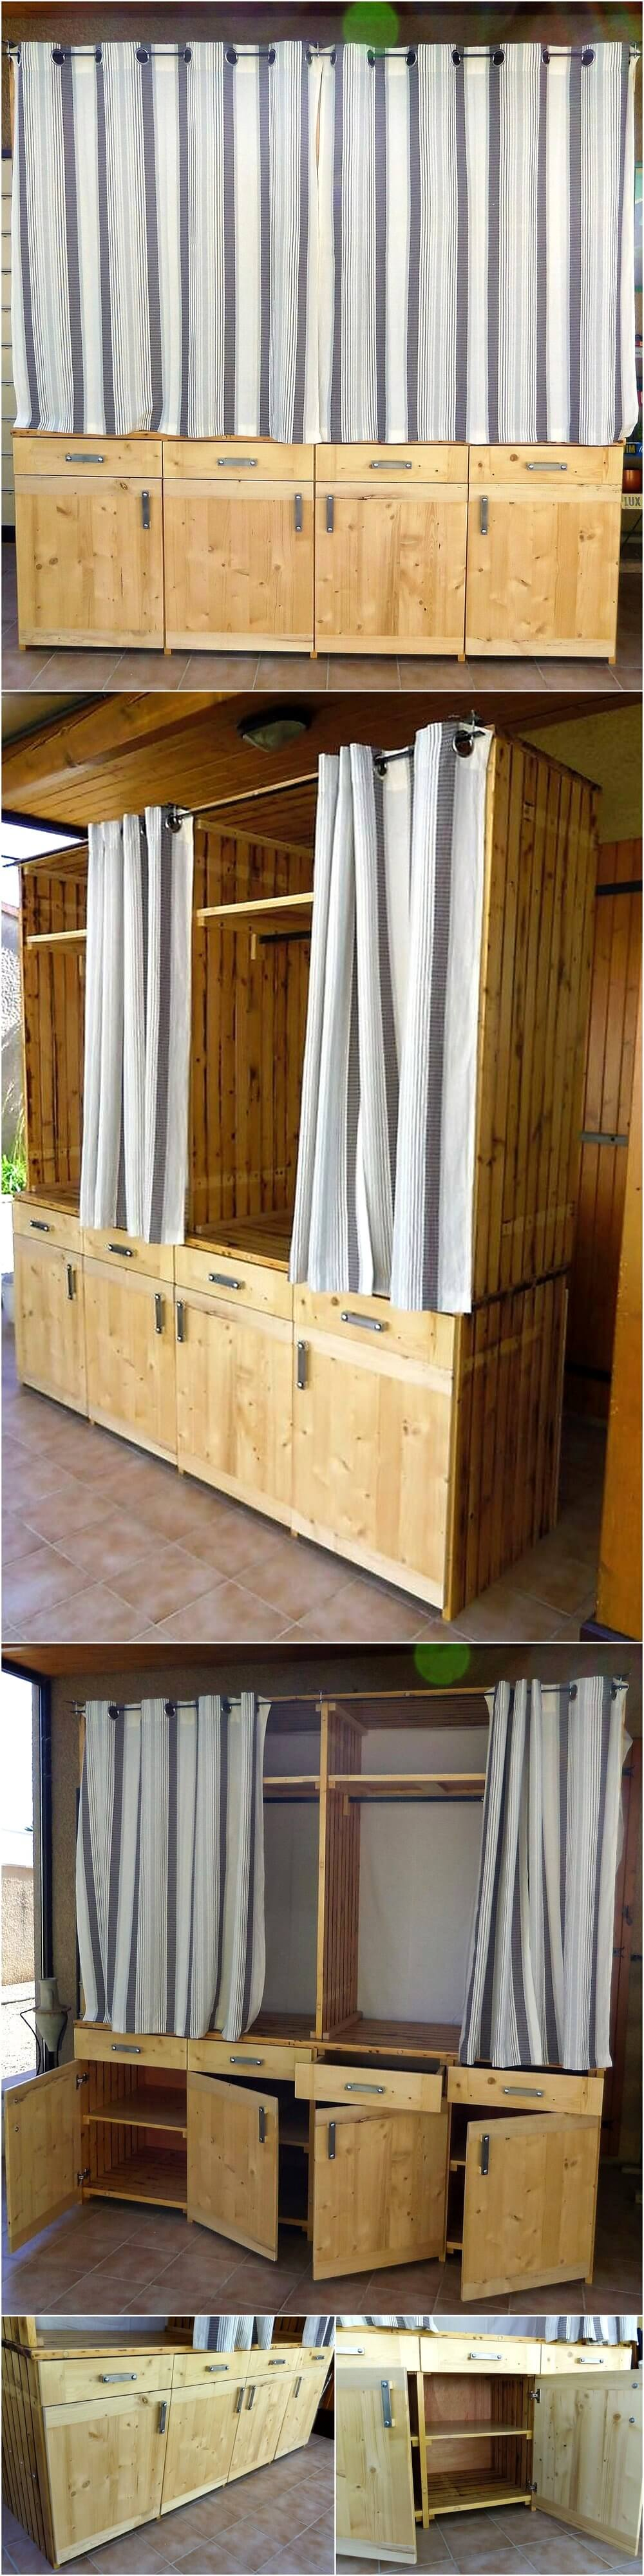 Wooden Pallets Made Dressing Room Idea